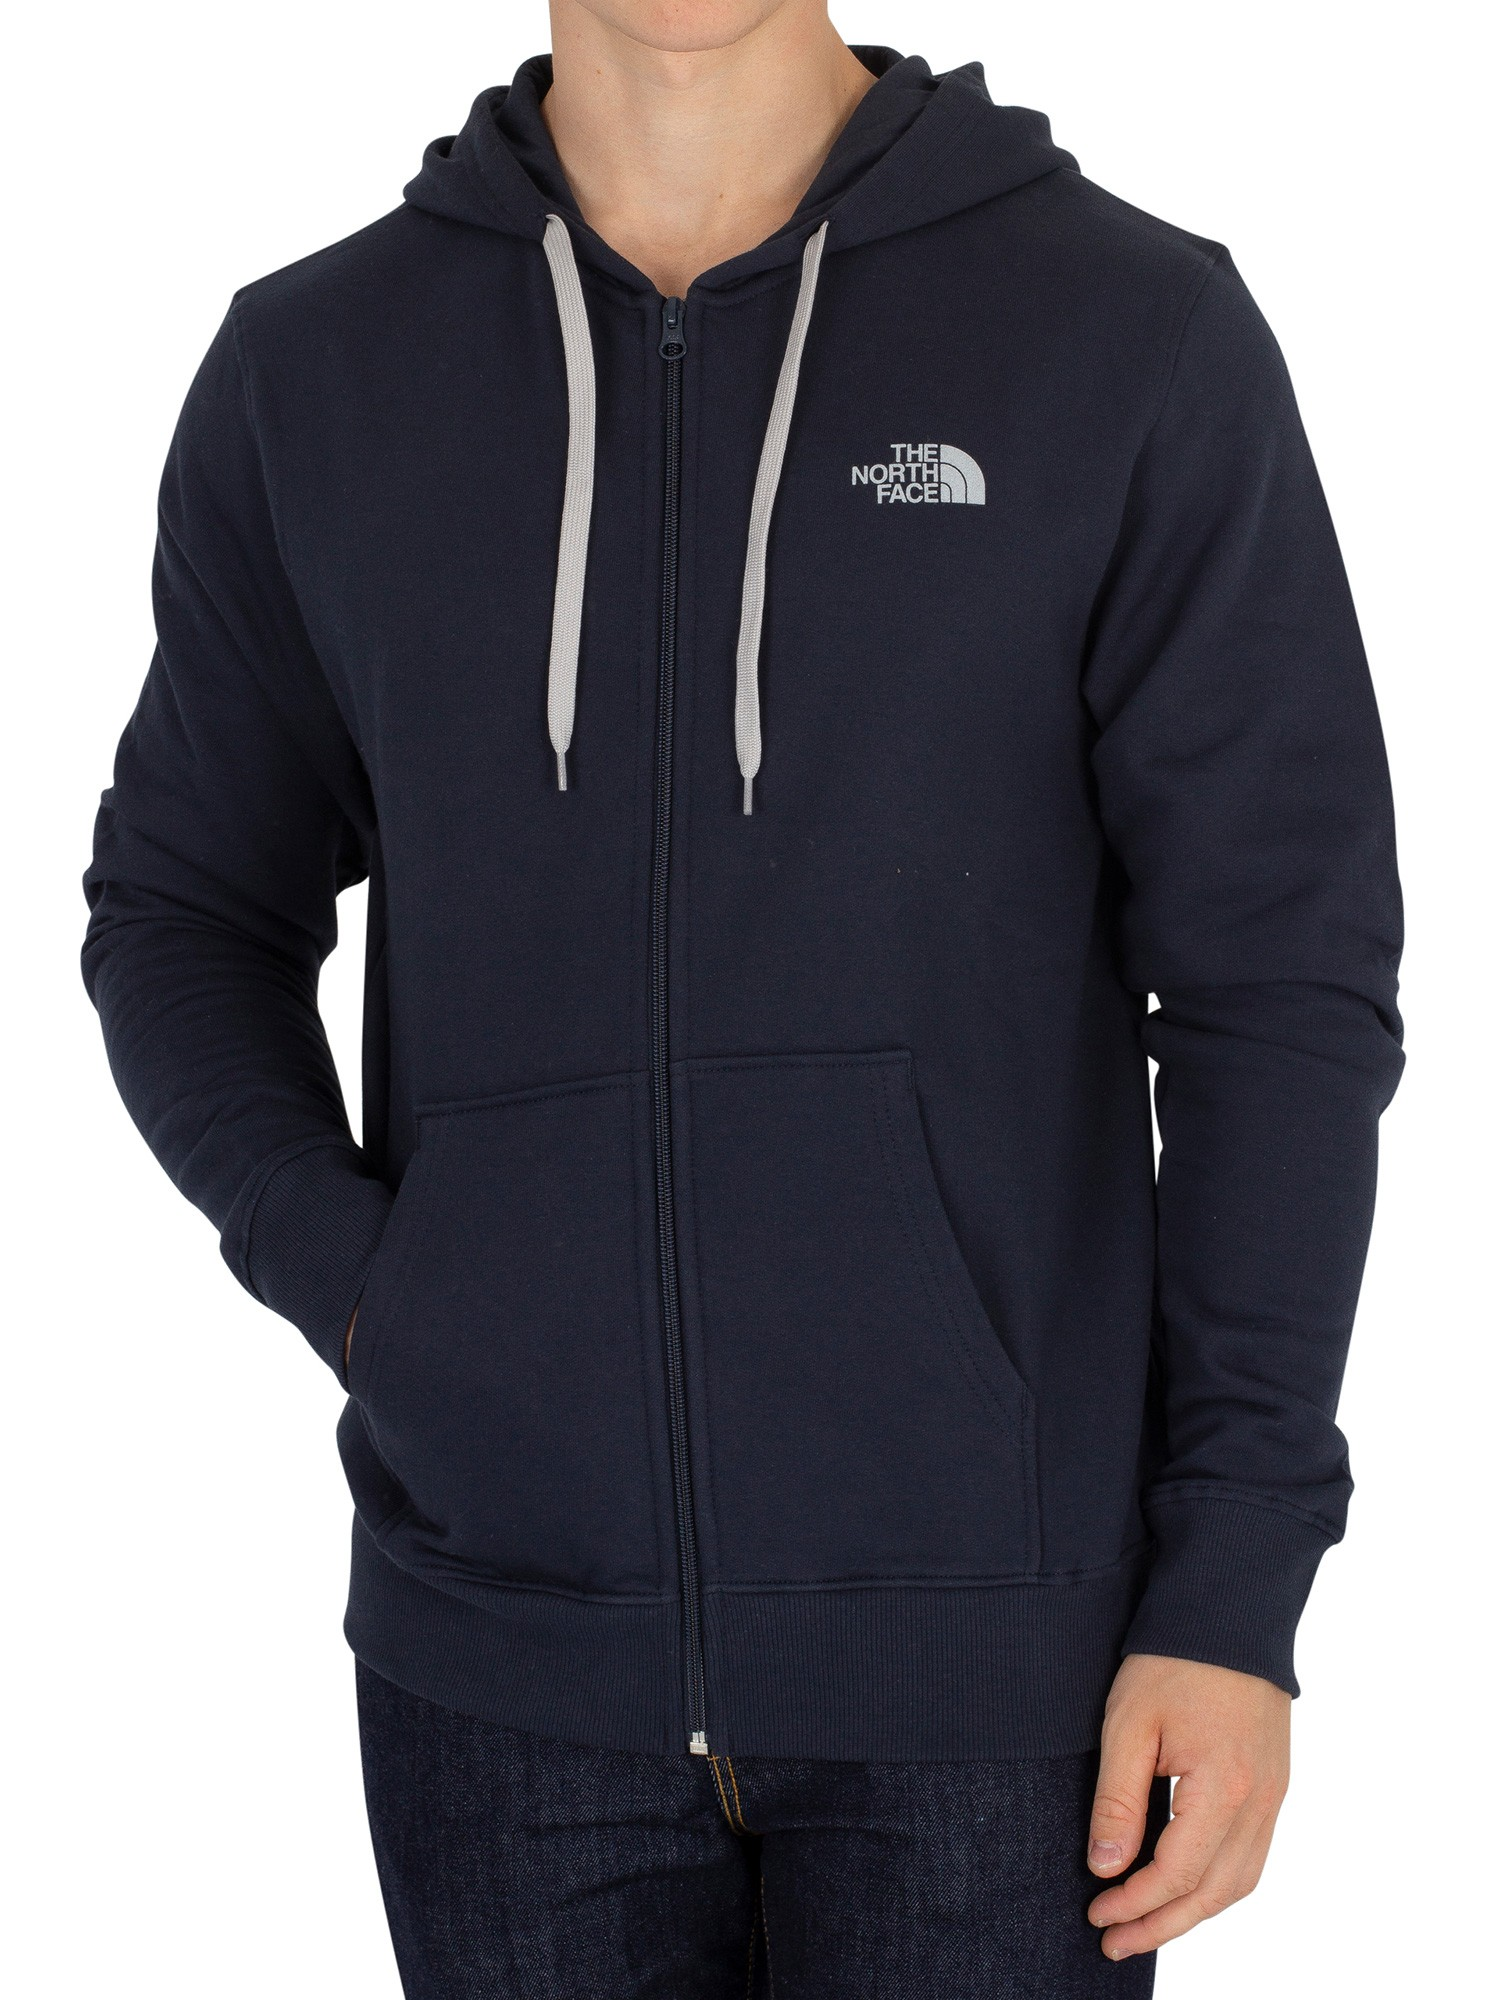 acb24ccb0 The North Face Urban Navy/Grey Open Gate Zip Logo Hoodie